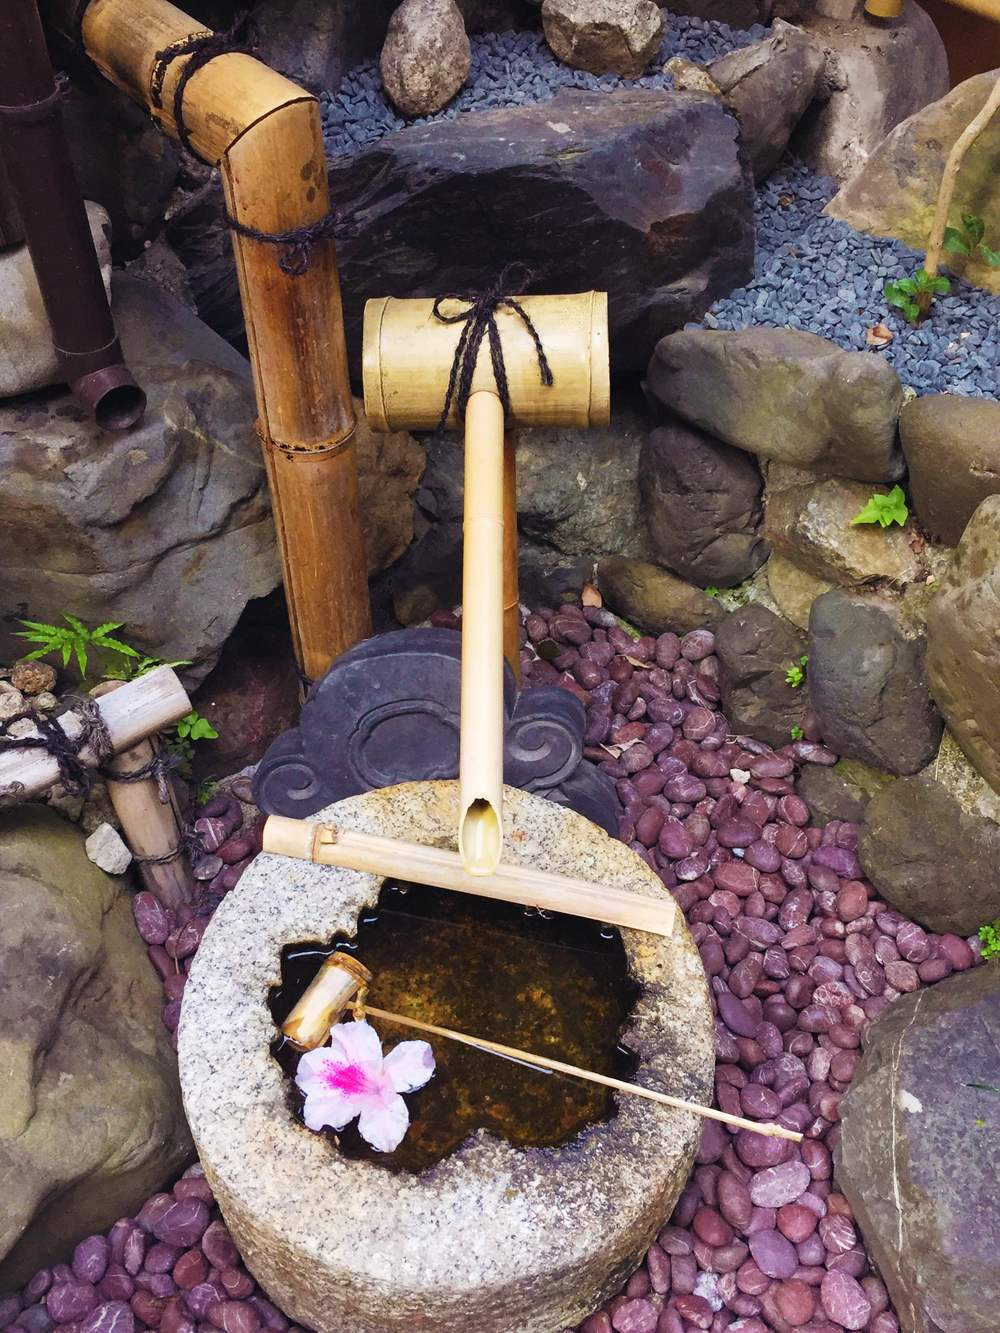 Yadoya's atmosphere was perfect for relaxing, or even meditating, if that's your thing.